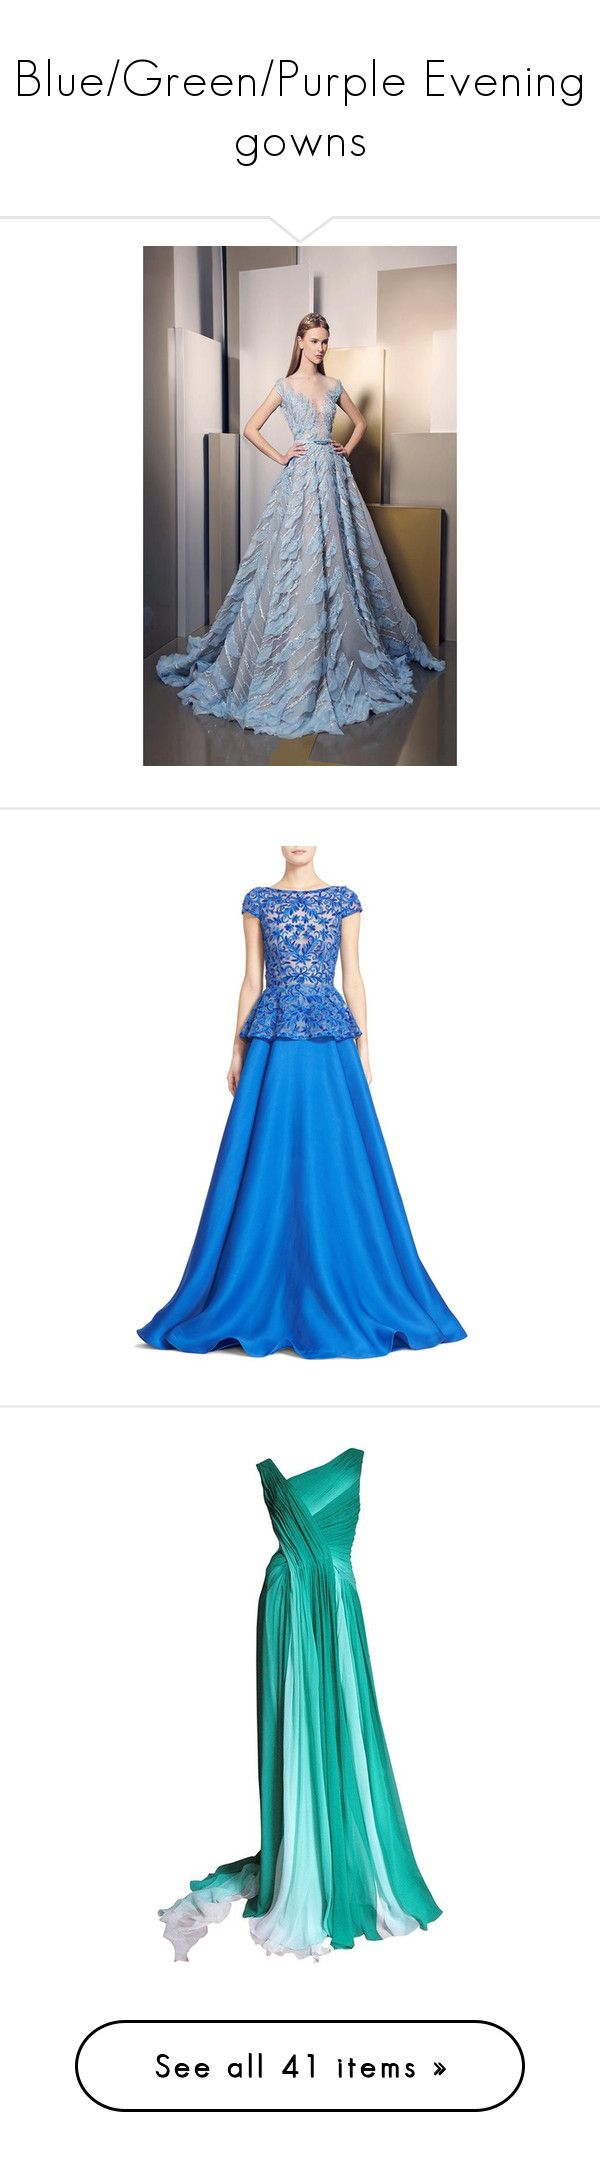 """Blue/Green/Purple Evening gowns"" by princesscarolina on Polyvore featuring dresses, gowns, royal blue, cap sleeve evening gown, blue evening dresses, evening cocktail dresses, royal blue gown, royal blue evening dress, long dresses e vestidos"